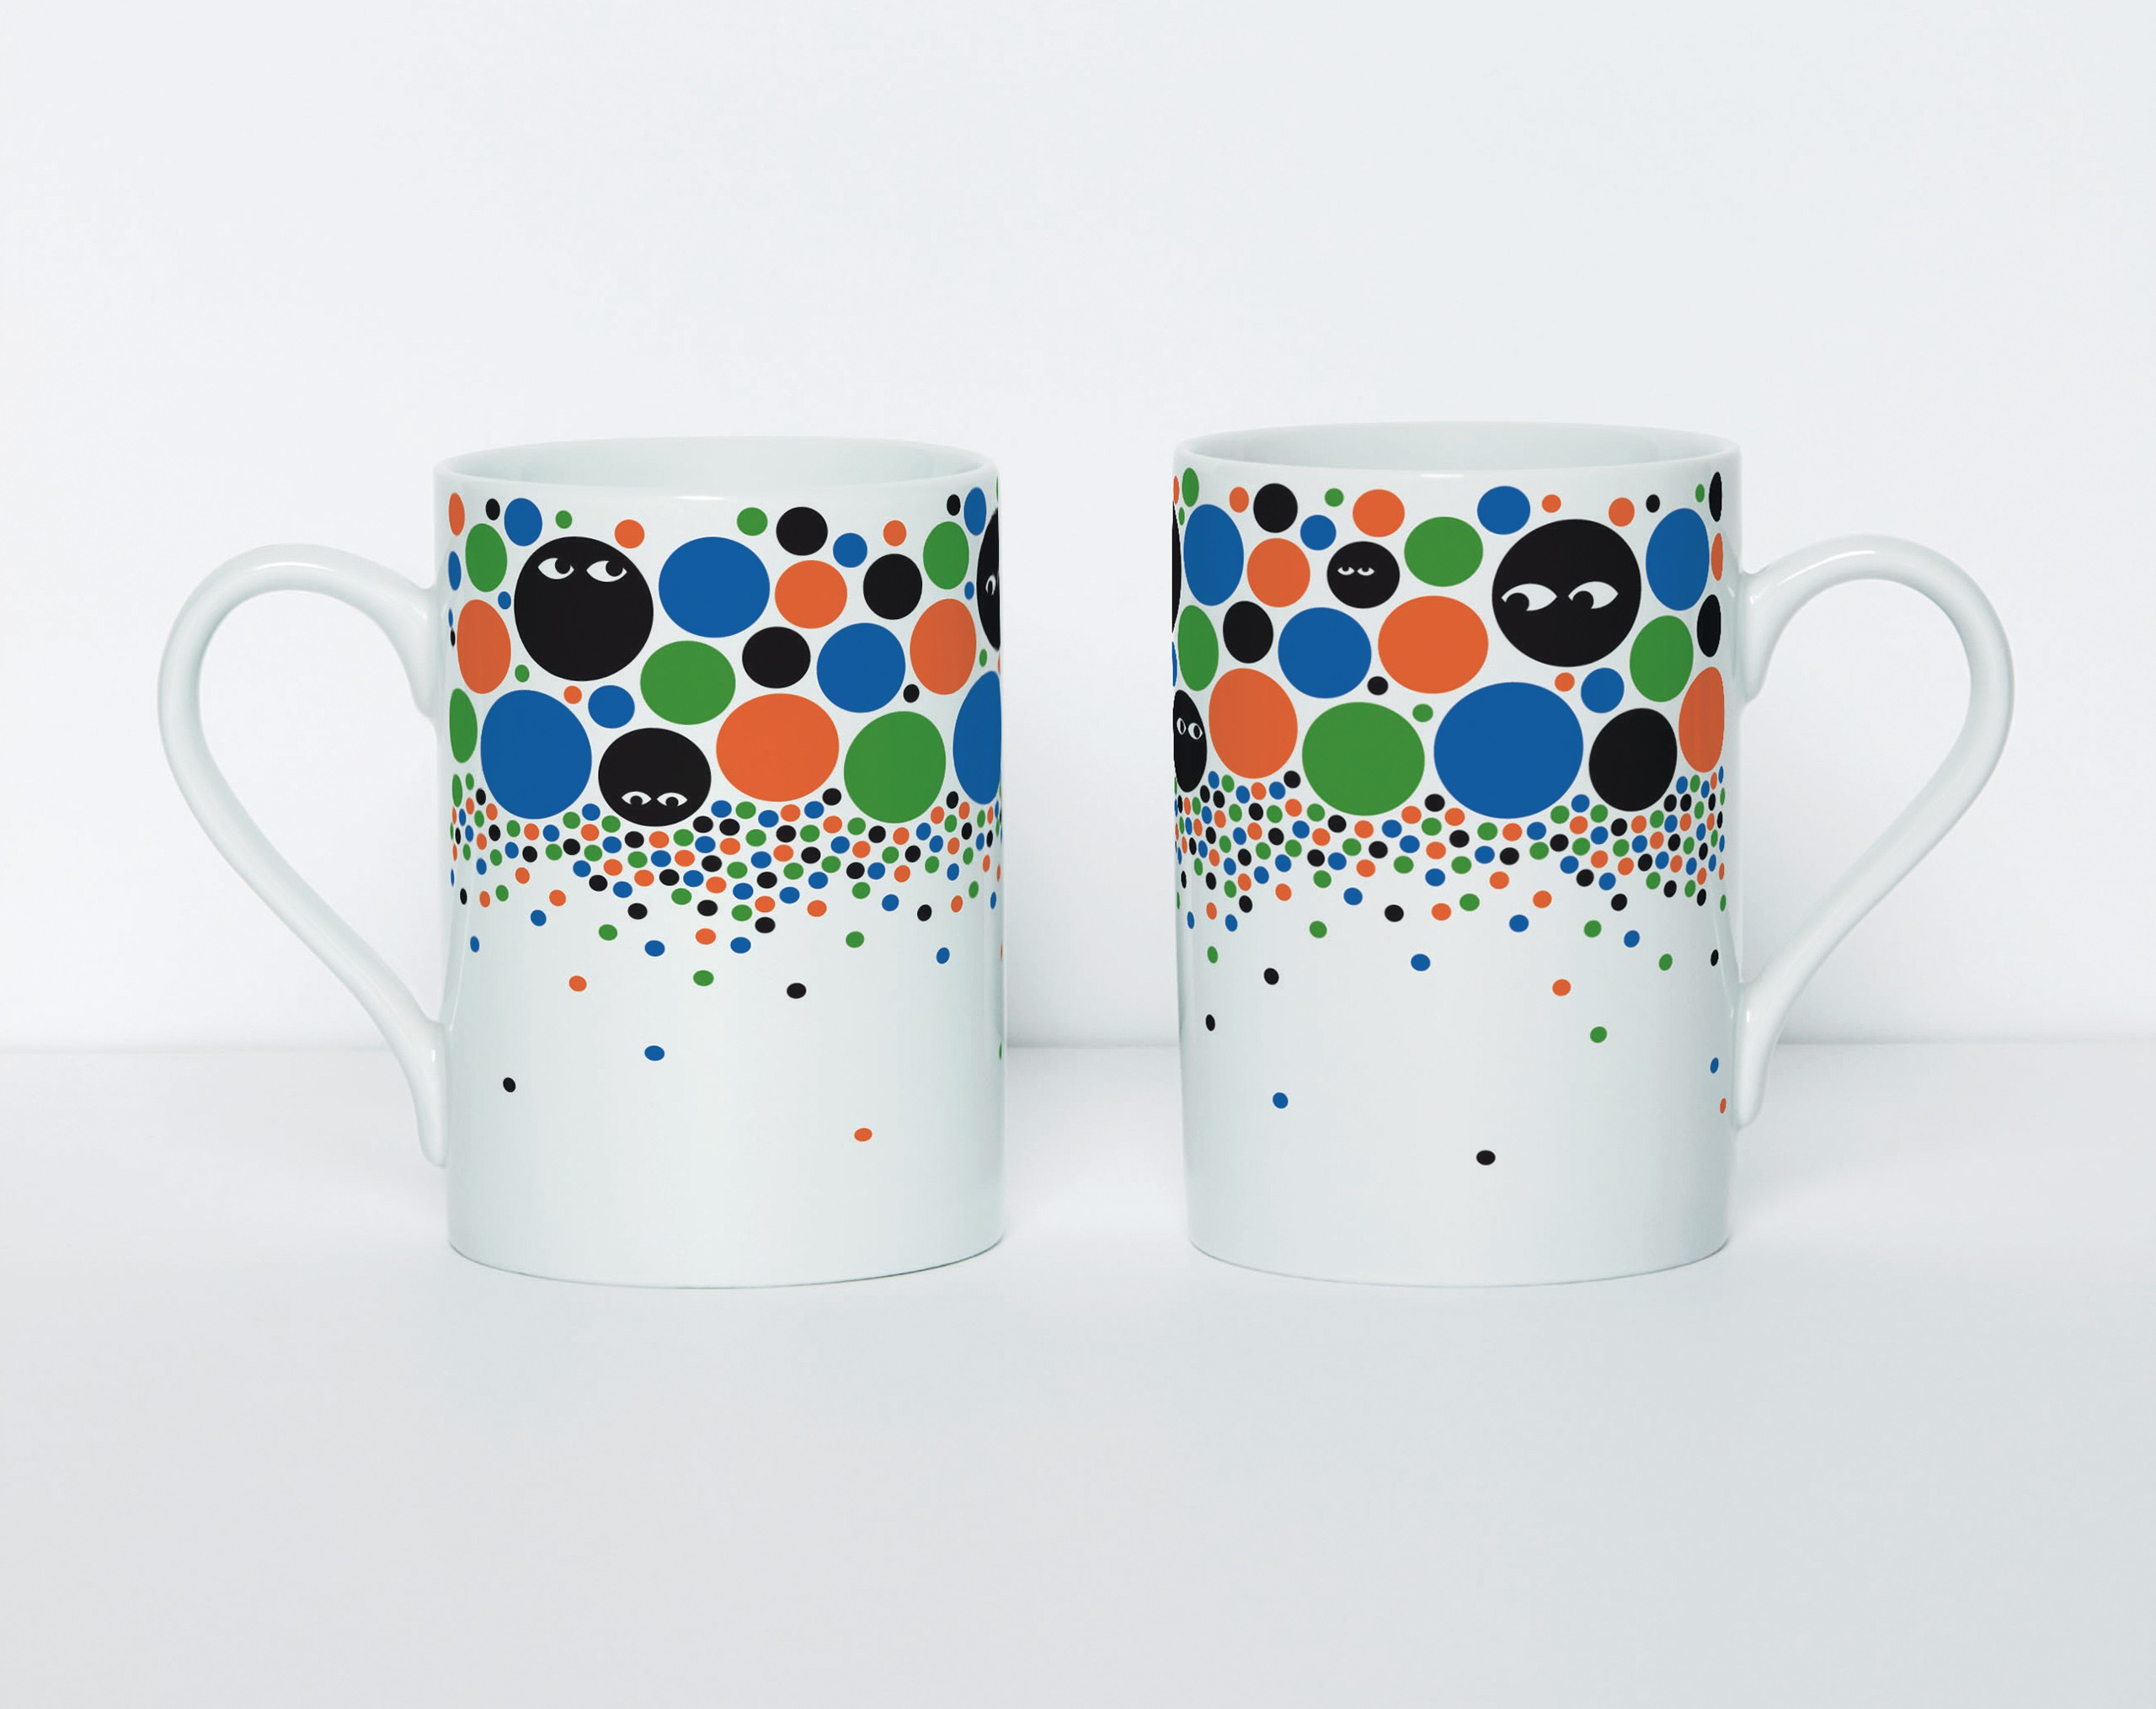 mug-design-domestic-rinzen-beguiling-bubbles